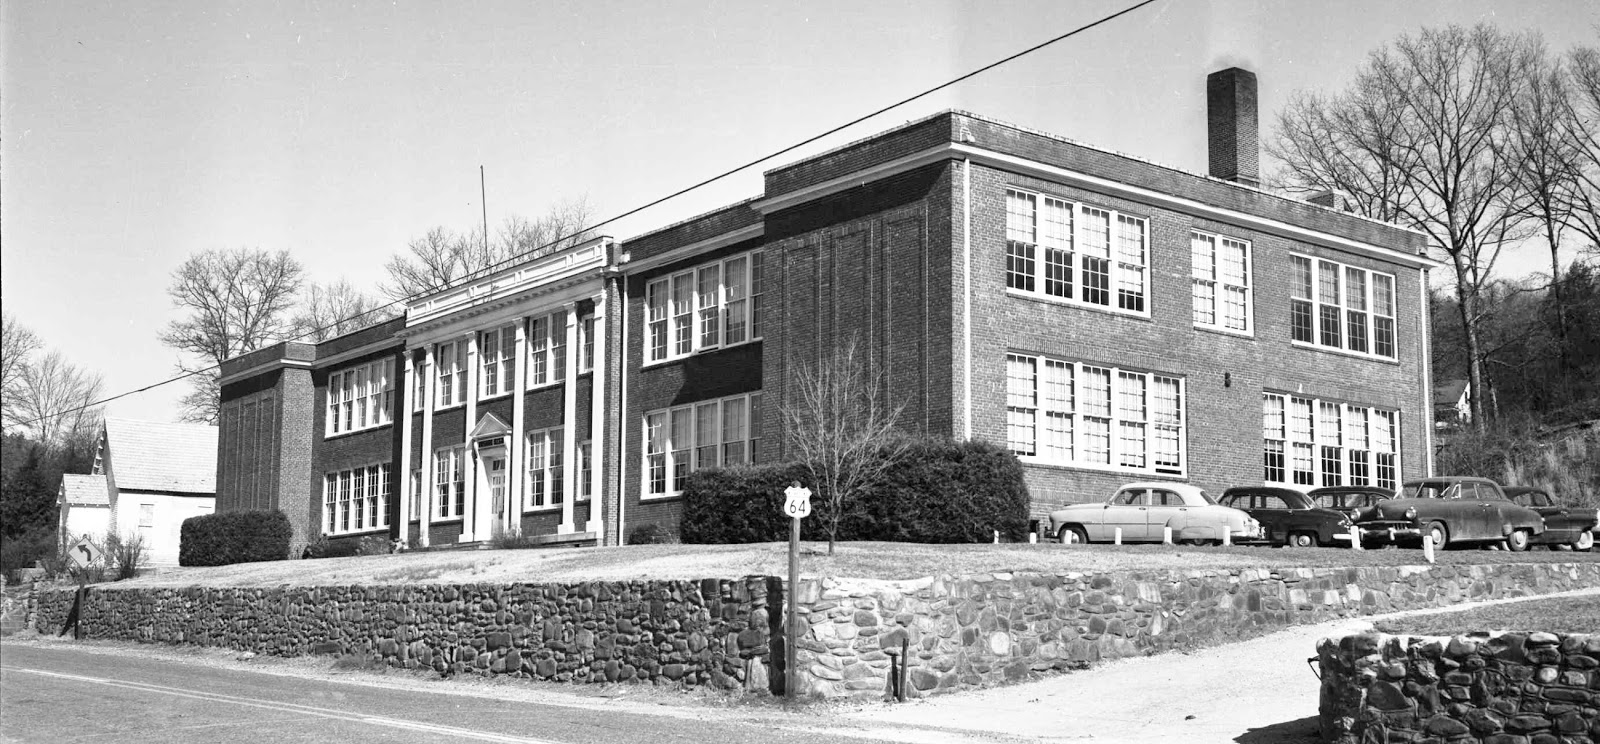 Six Wooden Pilasters Gave The Front Of Rosman High School A Classical  Appearance.